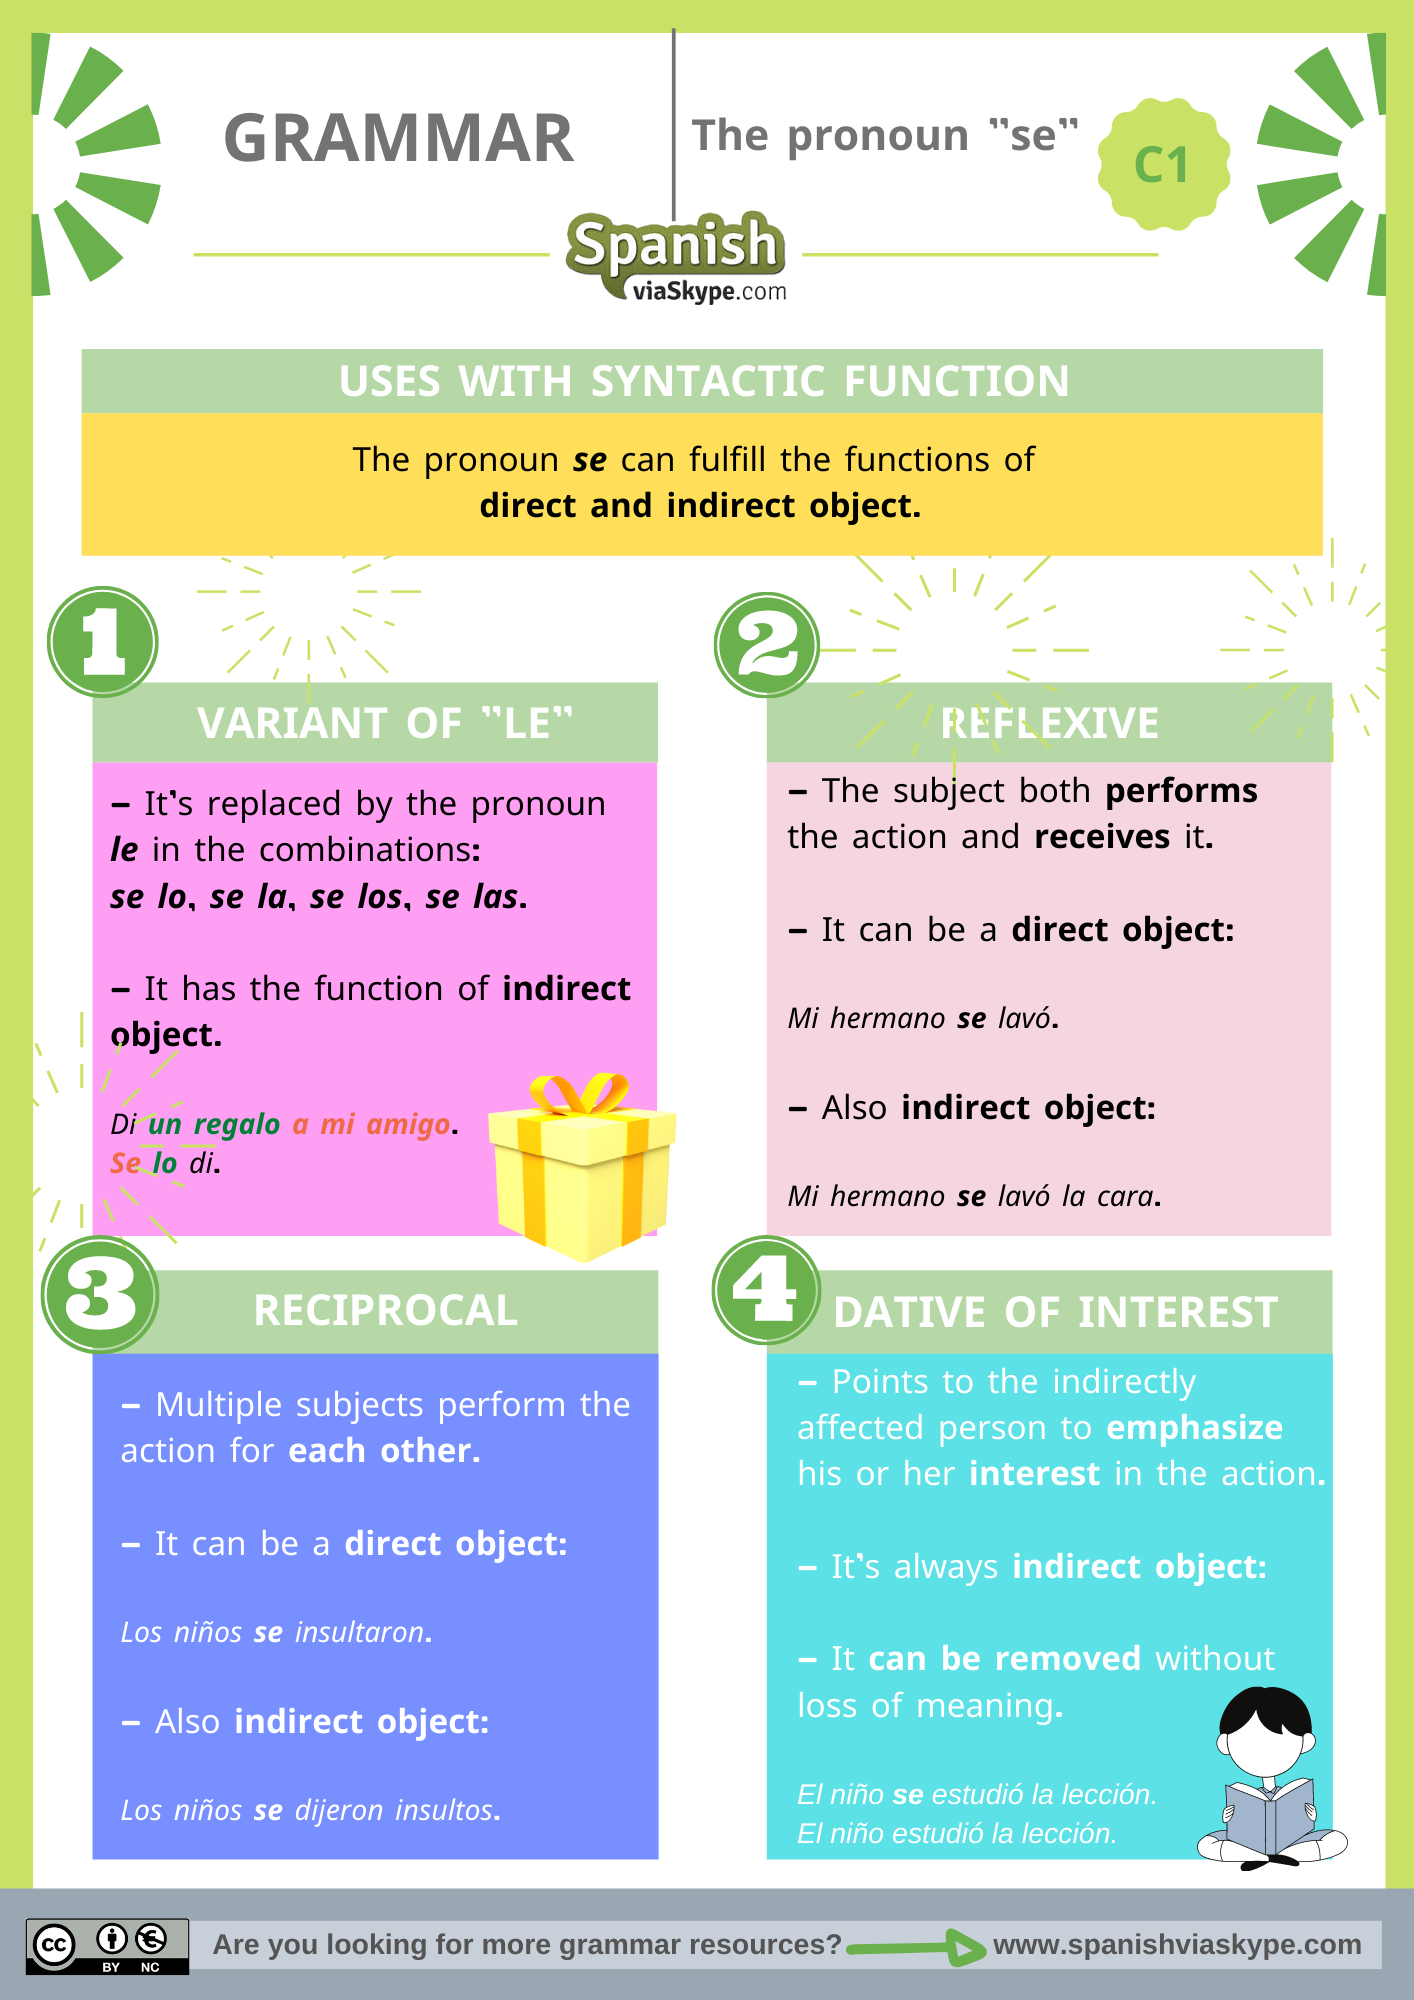 Infographic about the uses of the pronoun se with syntactic function in Spanish